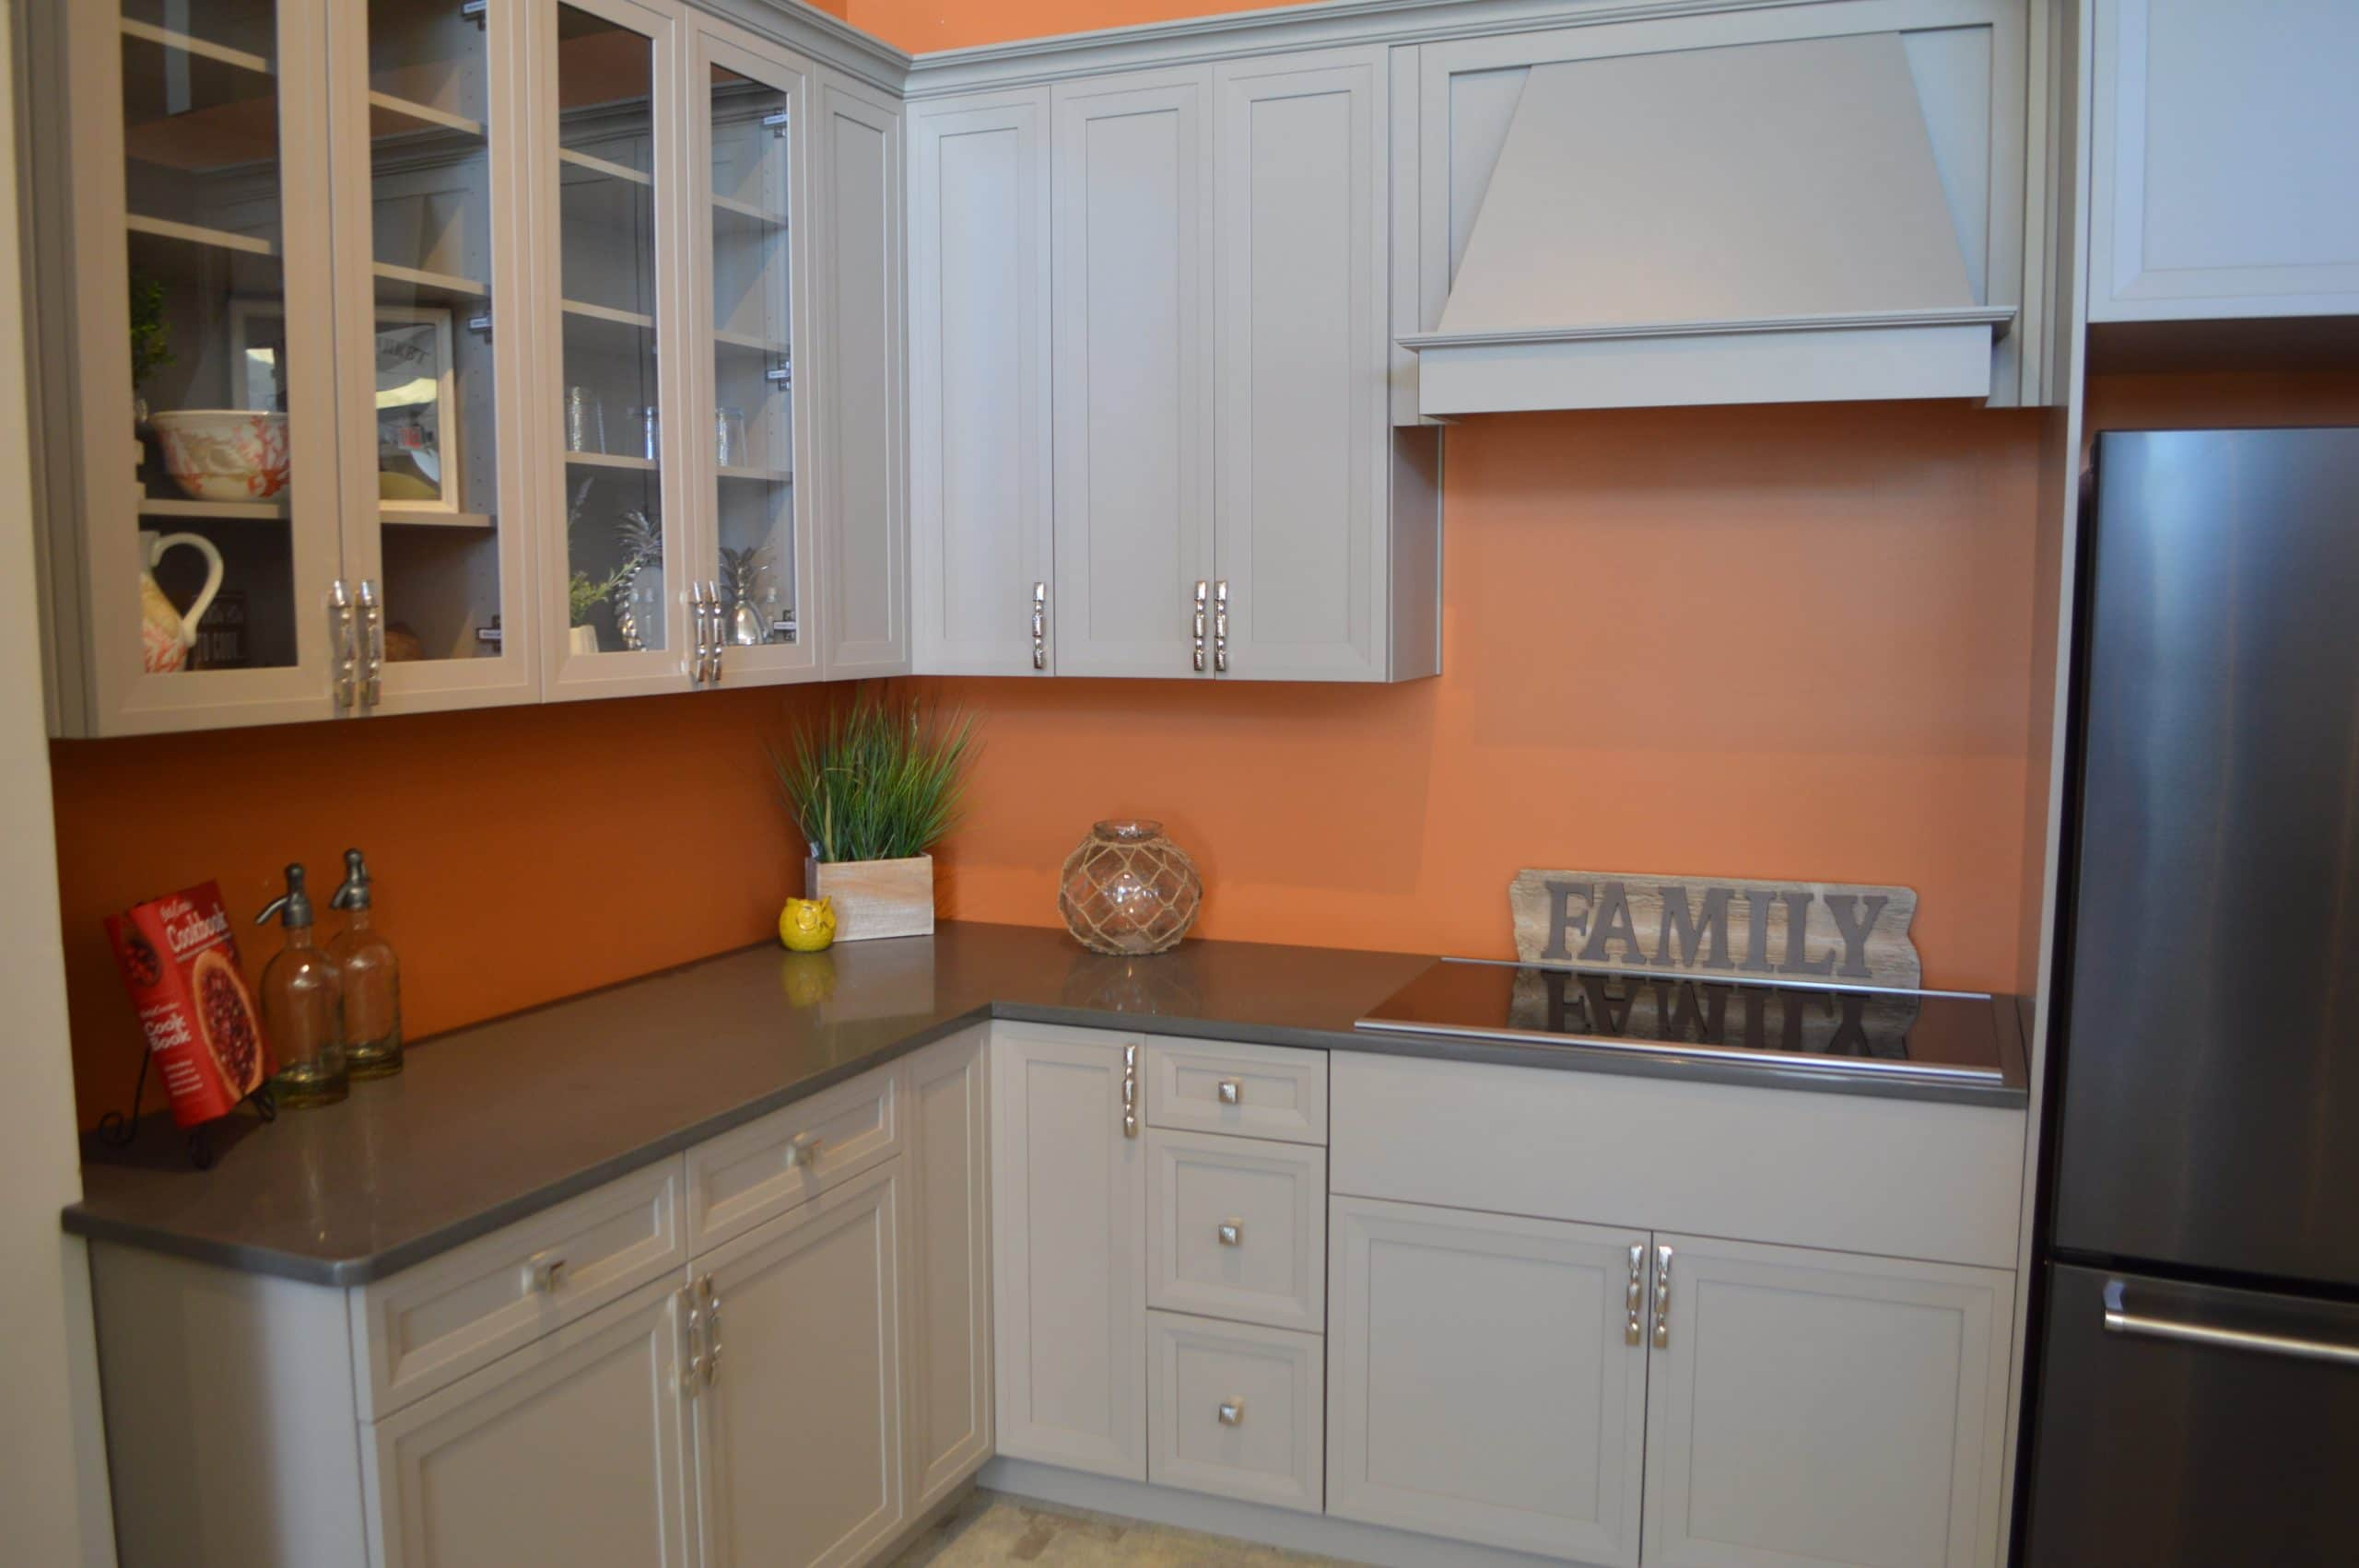 beige cabinets and orange walls